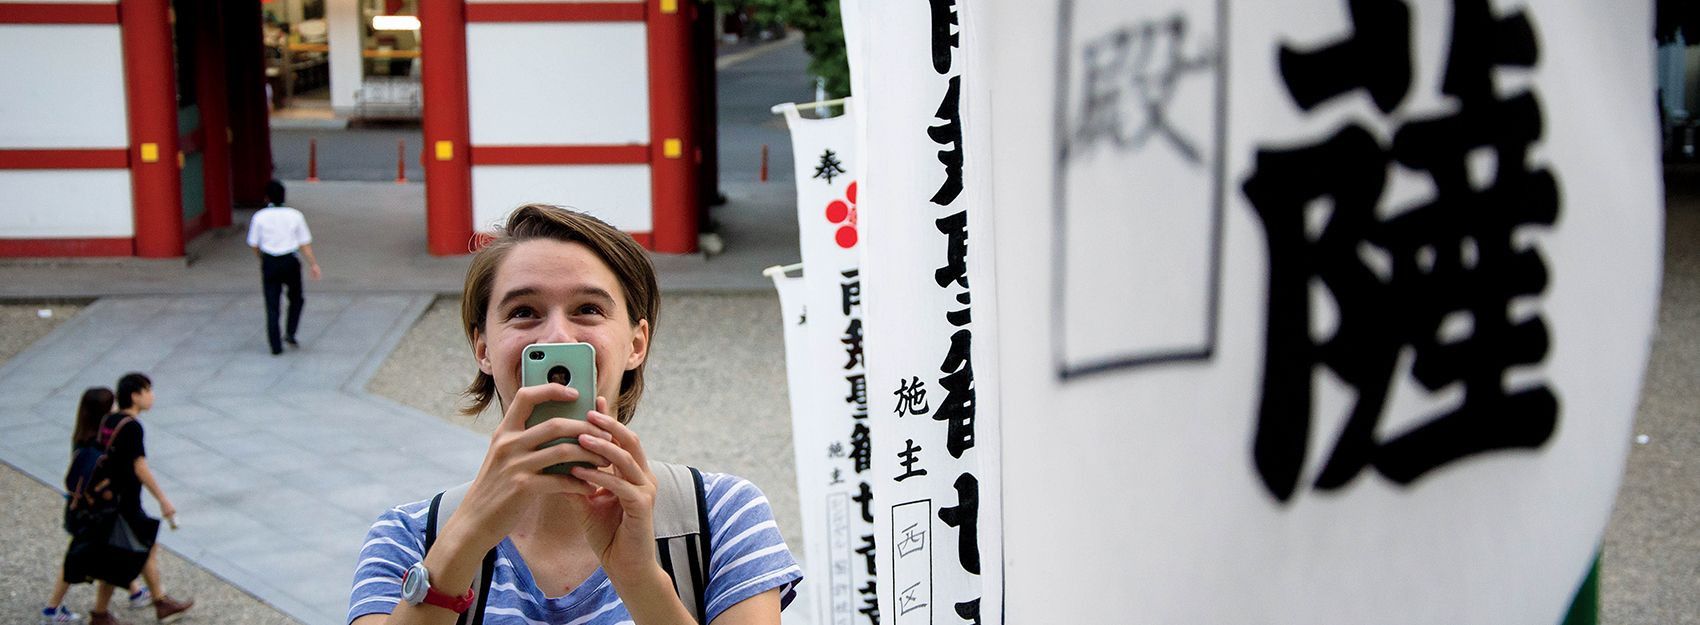 Nagoya Study Abroad student takes a photo next to calligraphy banners